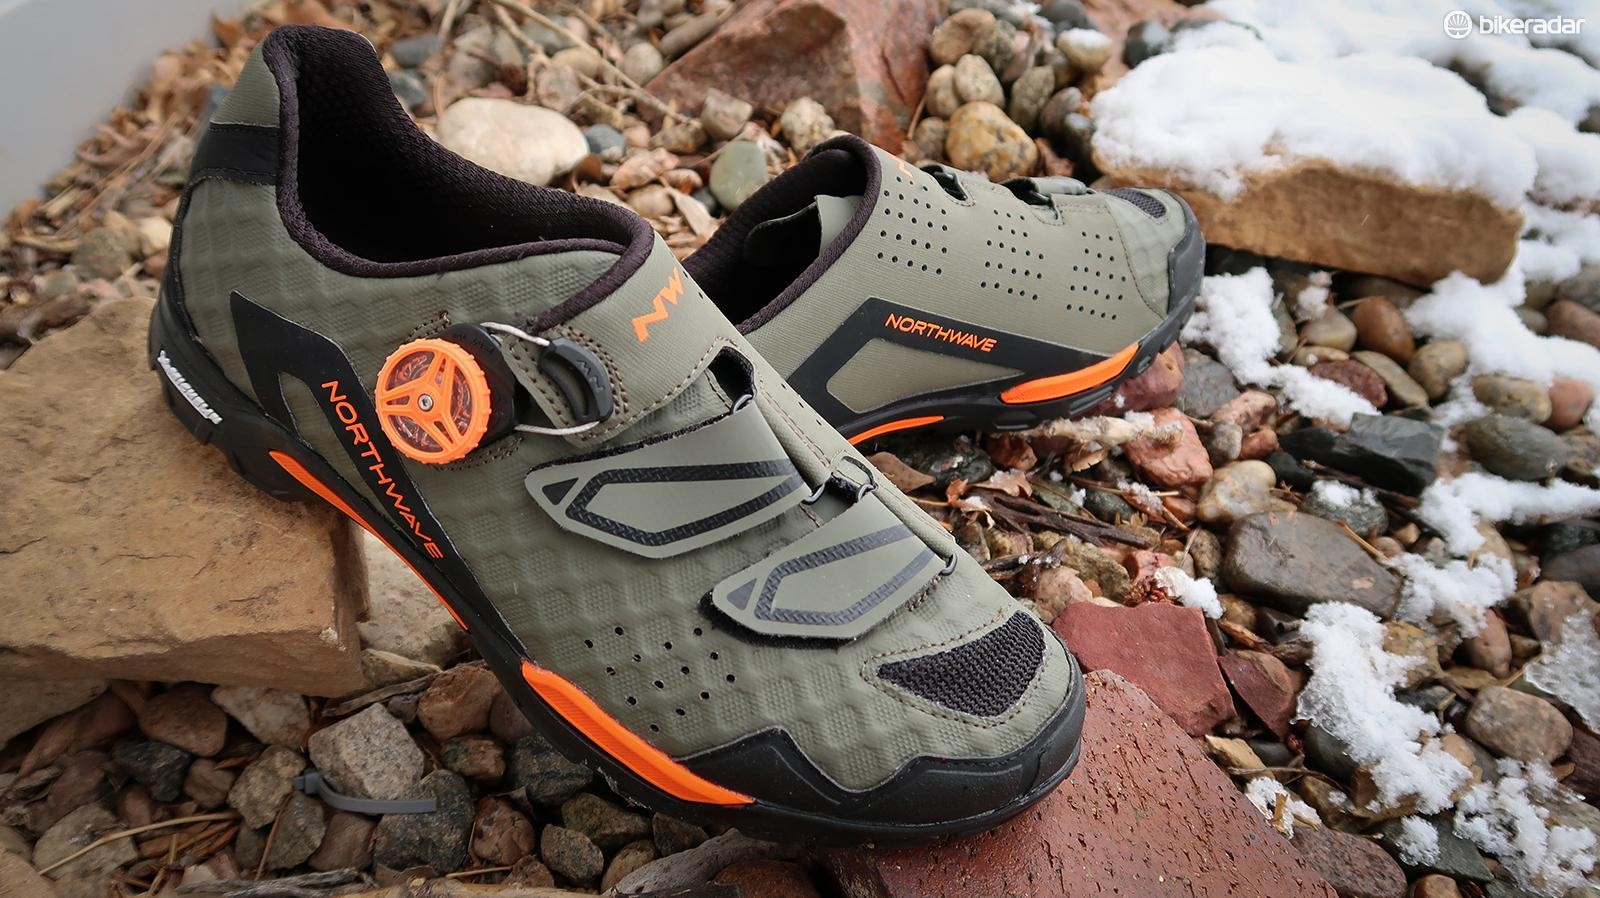 Northwave's Outcross Plus is a trail-oriented mountain shoe